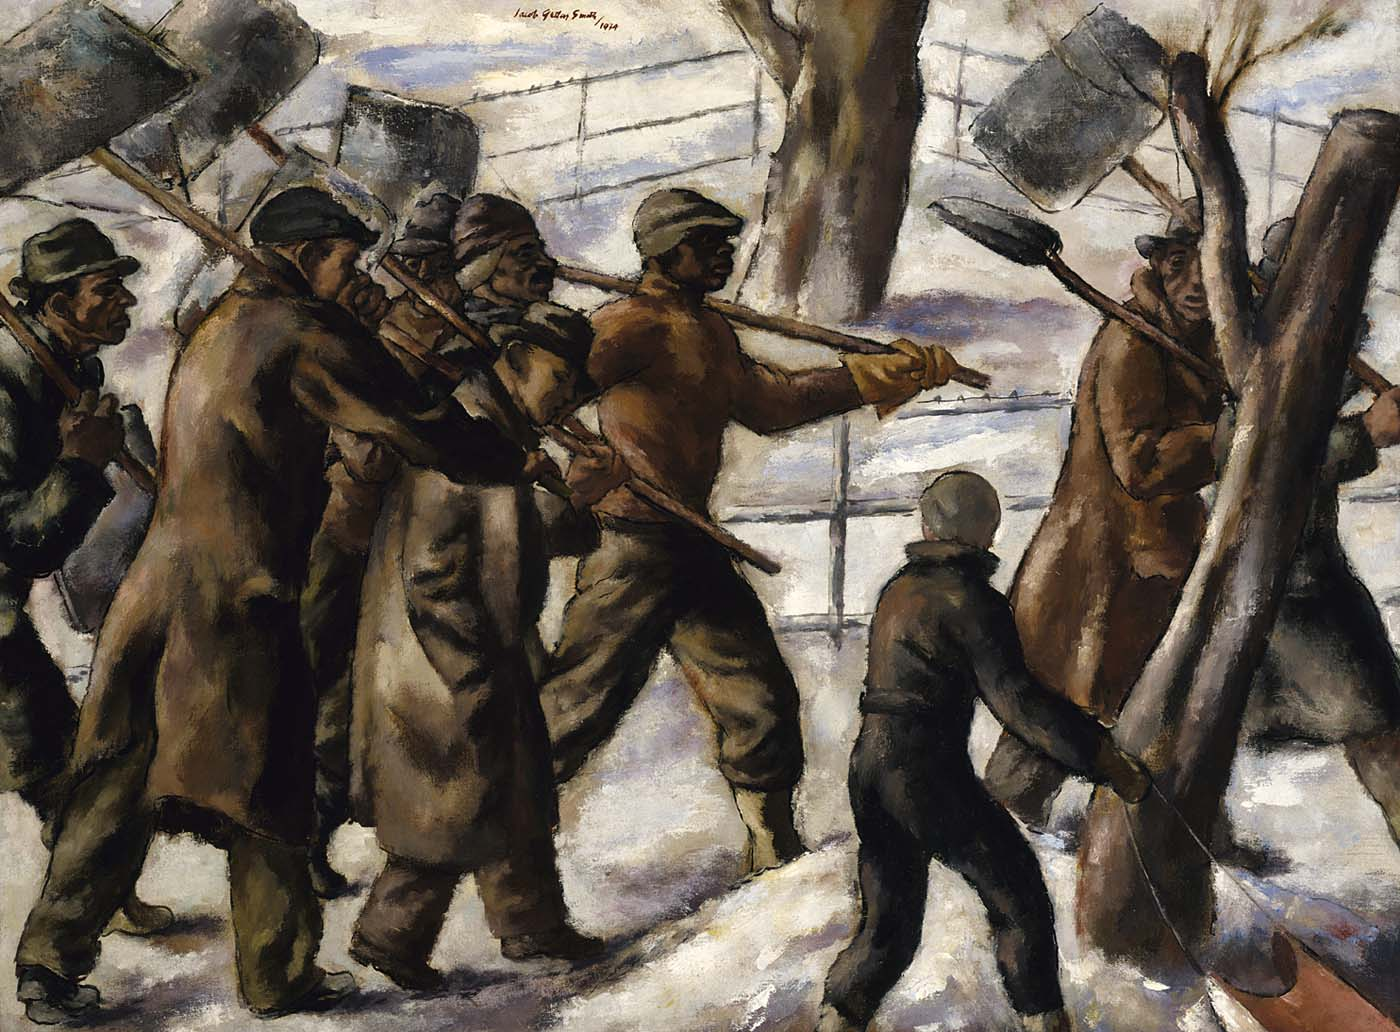 Snow Shovellers, 1934, Jacob Getlar Smith, Smithsonian American Art Museum